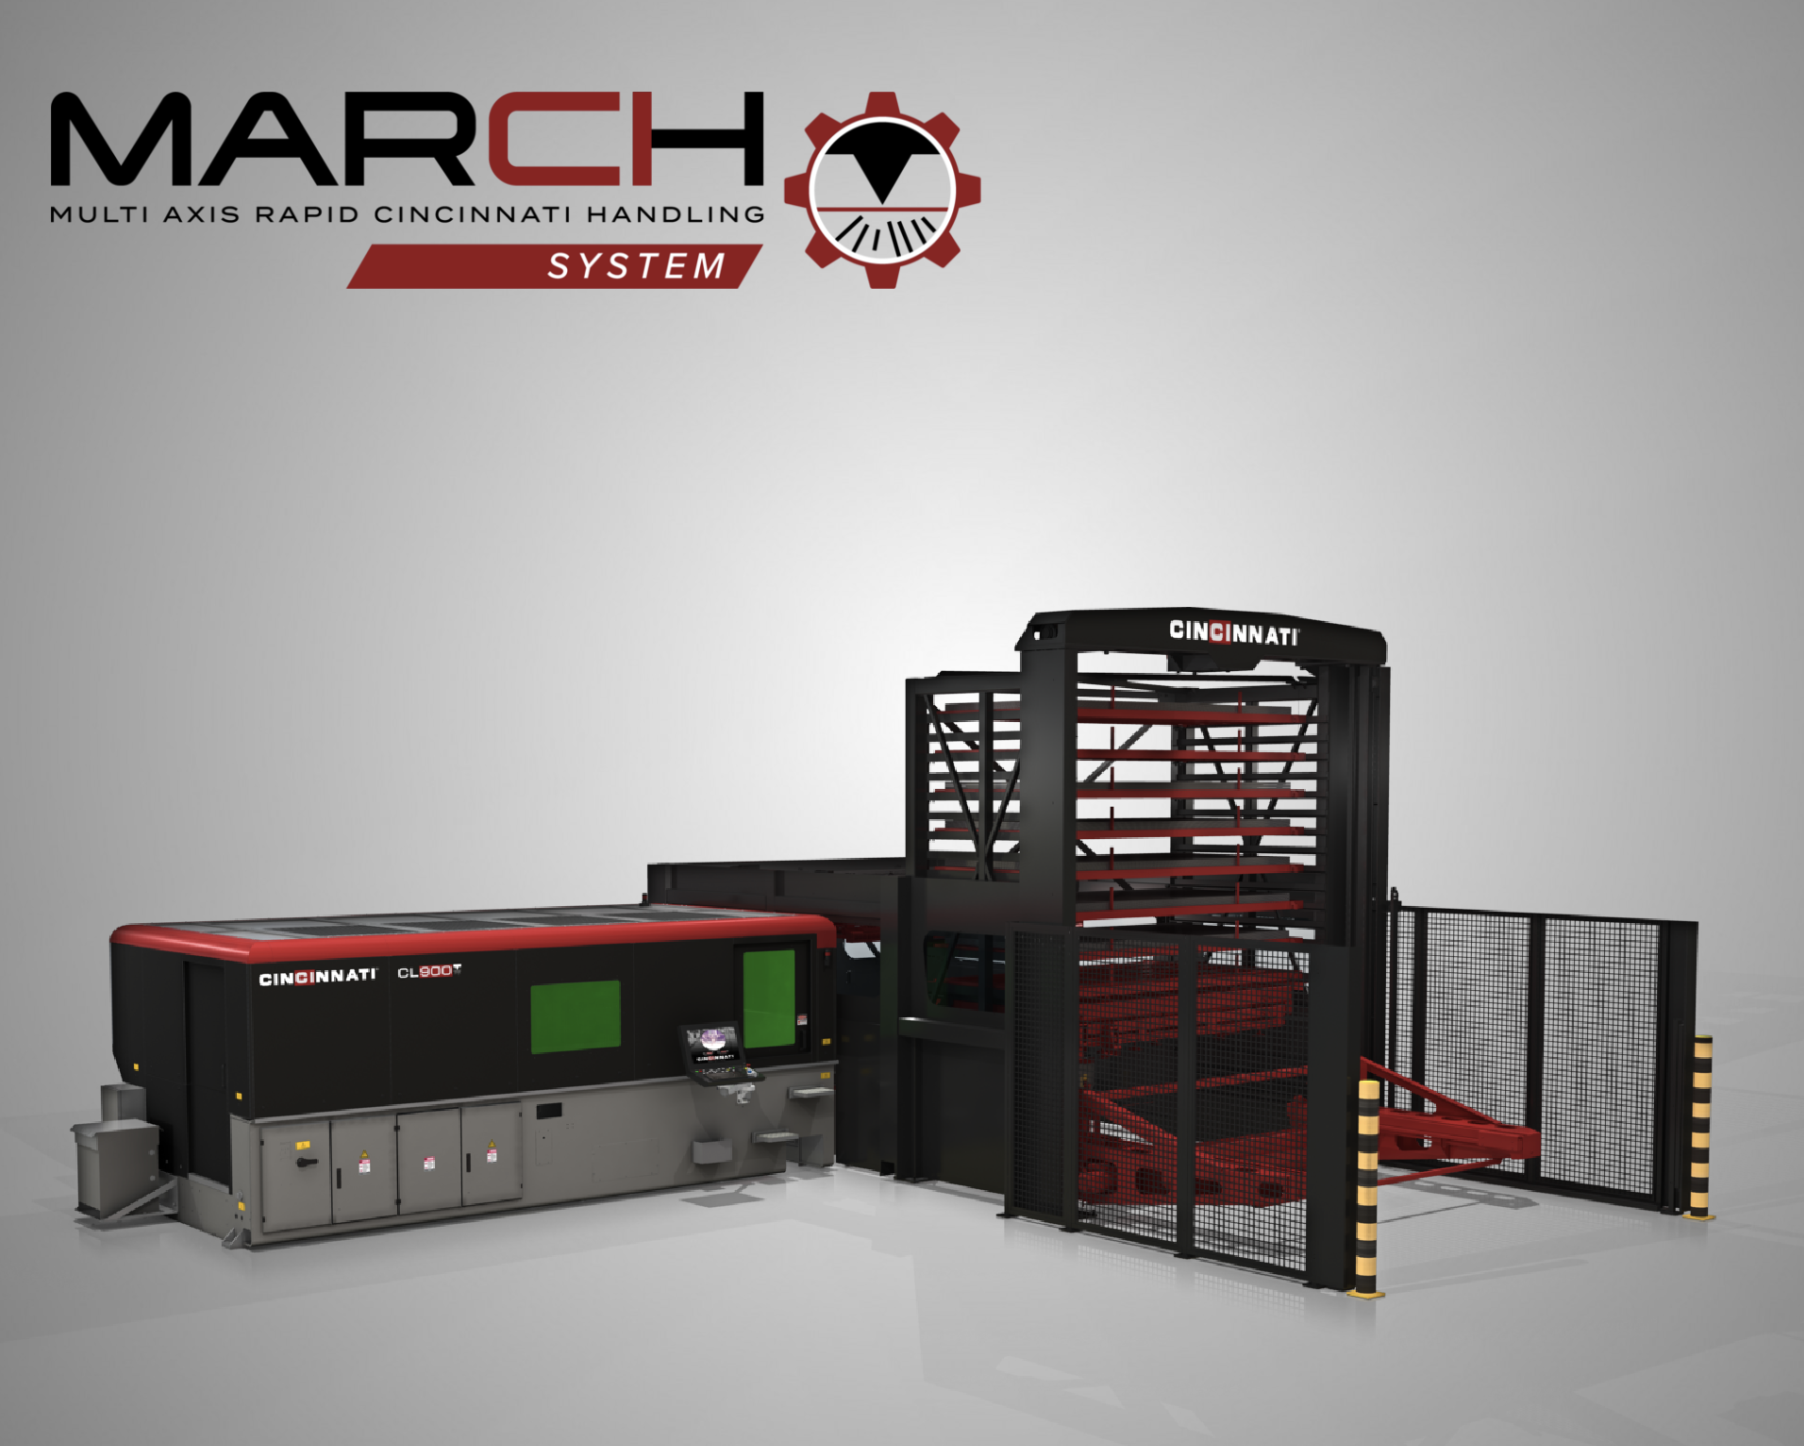 MARCH System